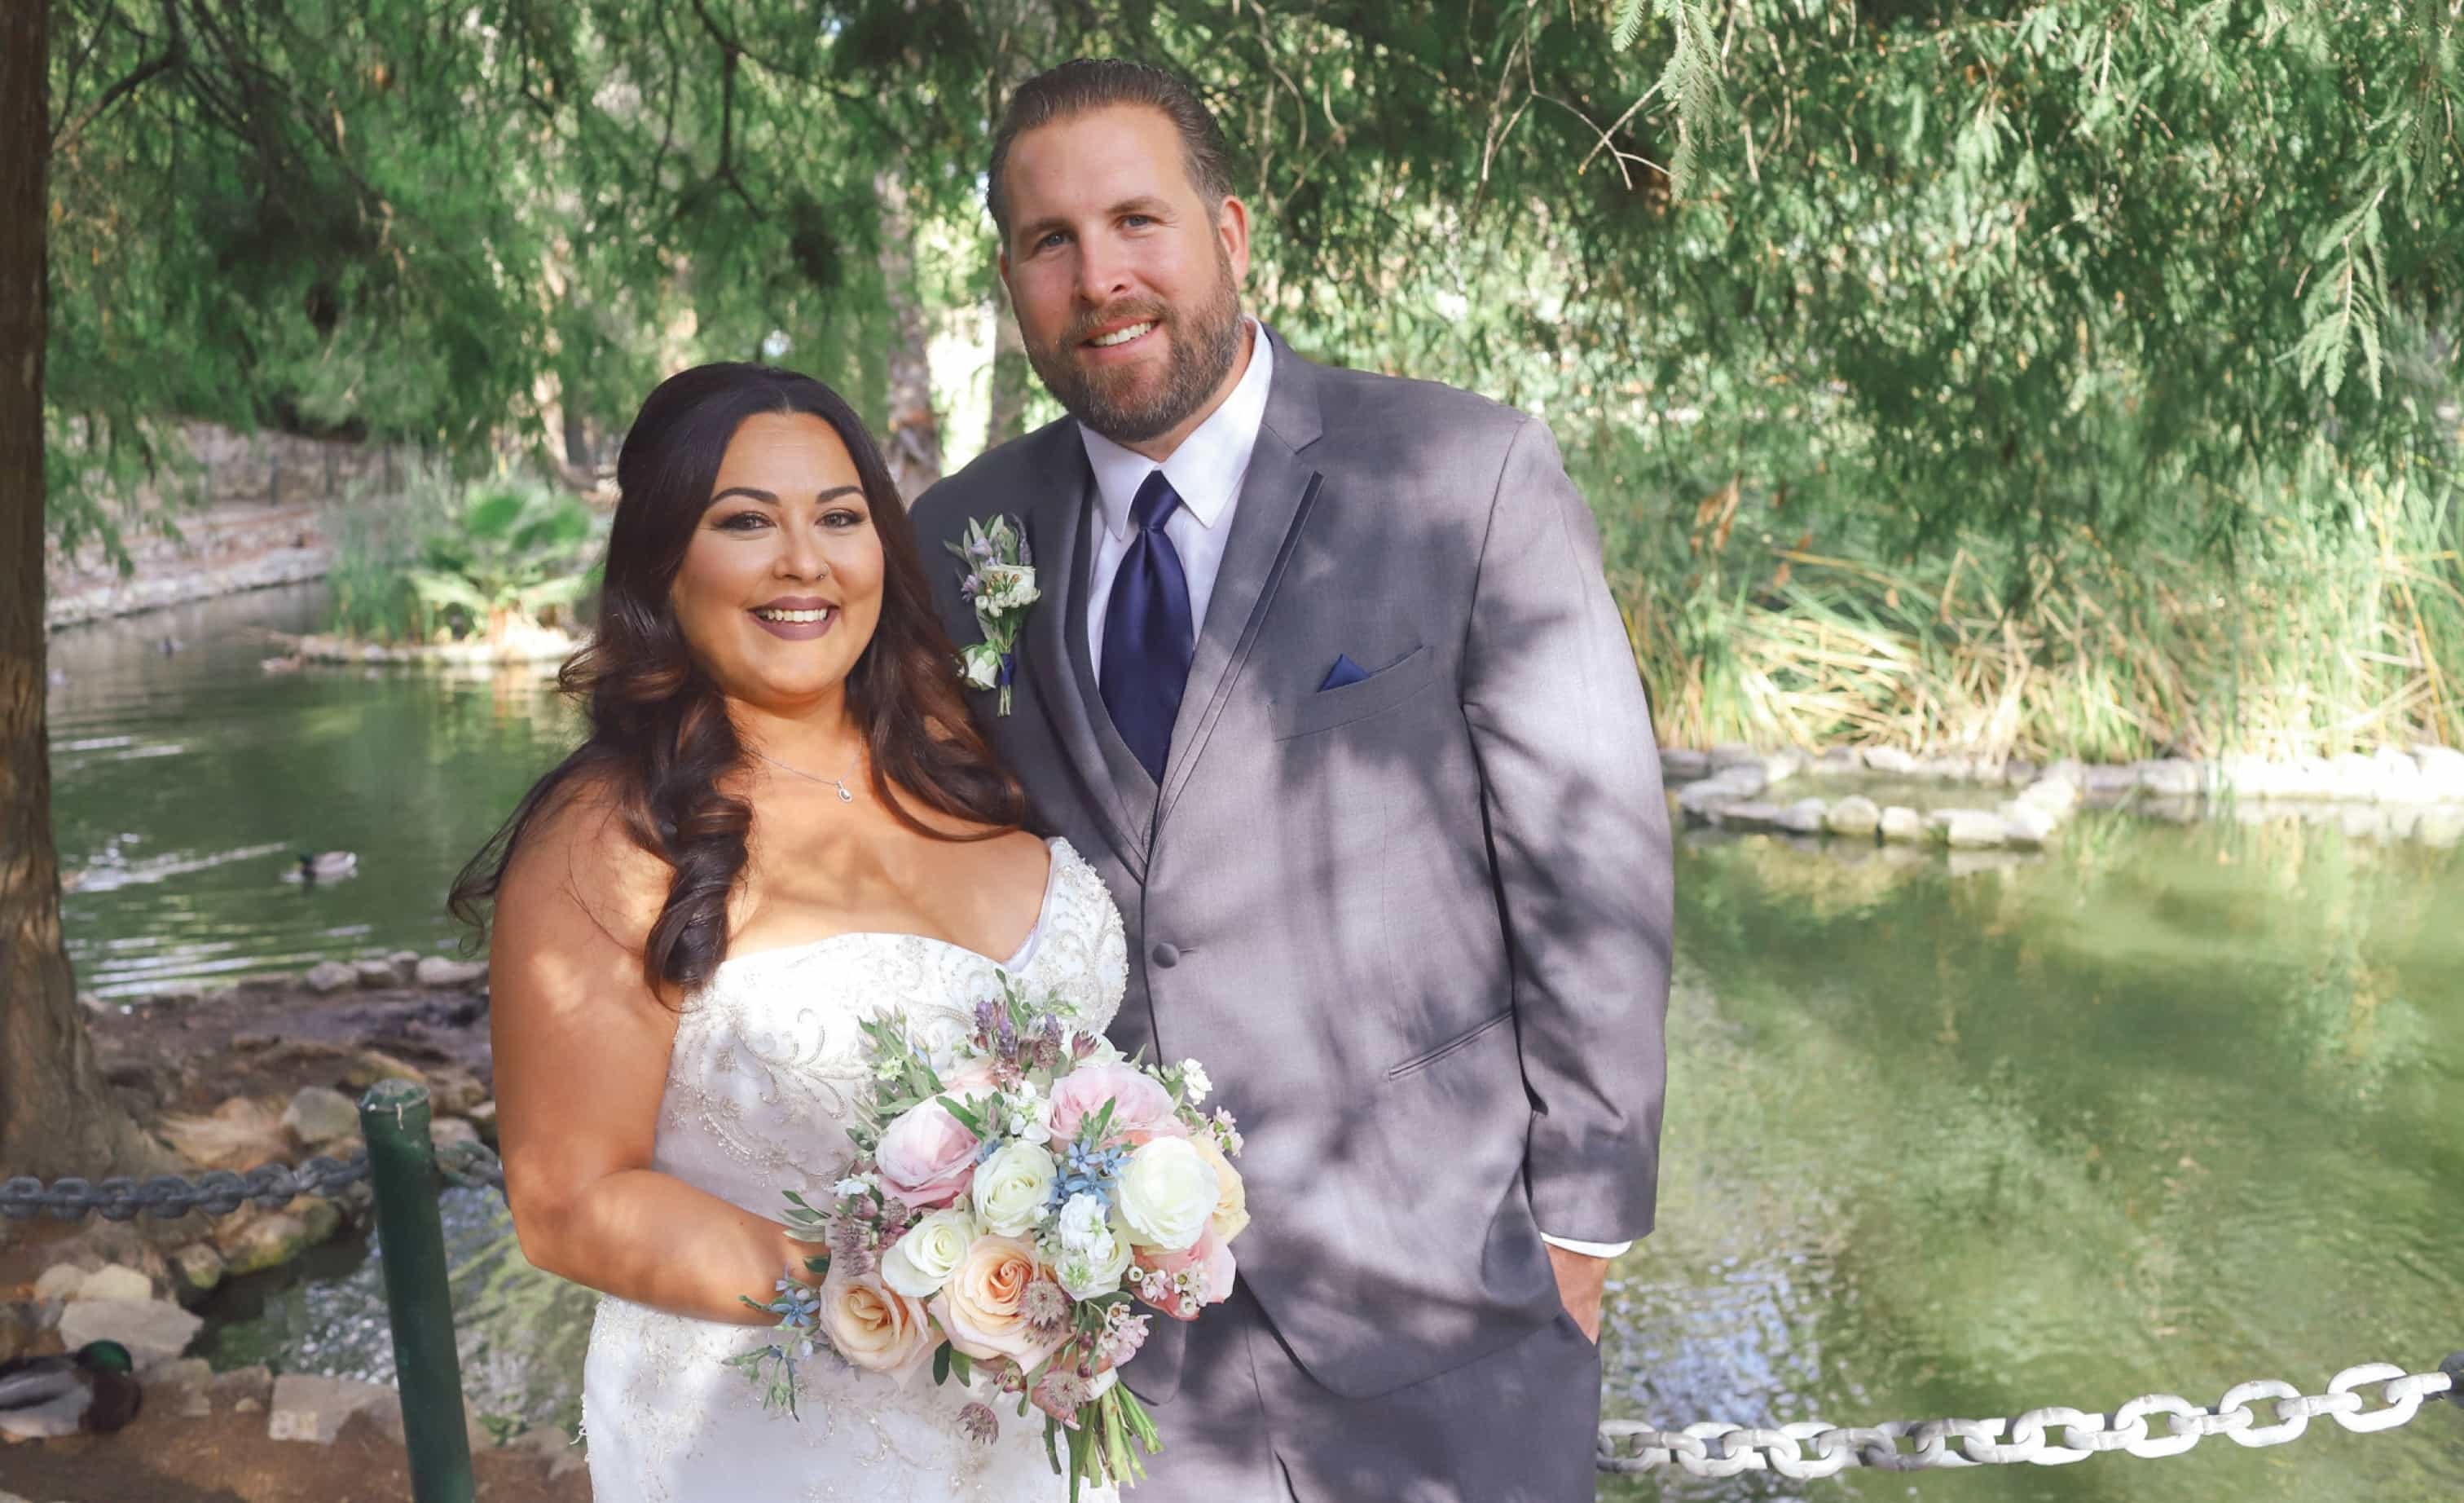 Photo of Wedding of Monique and Andrew Ursich in San Pedro California (Photo by Kelly Huljev)